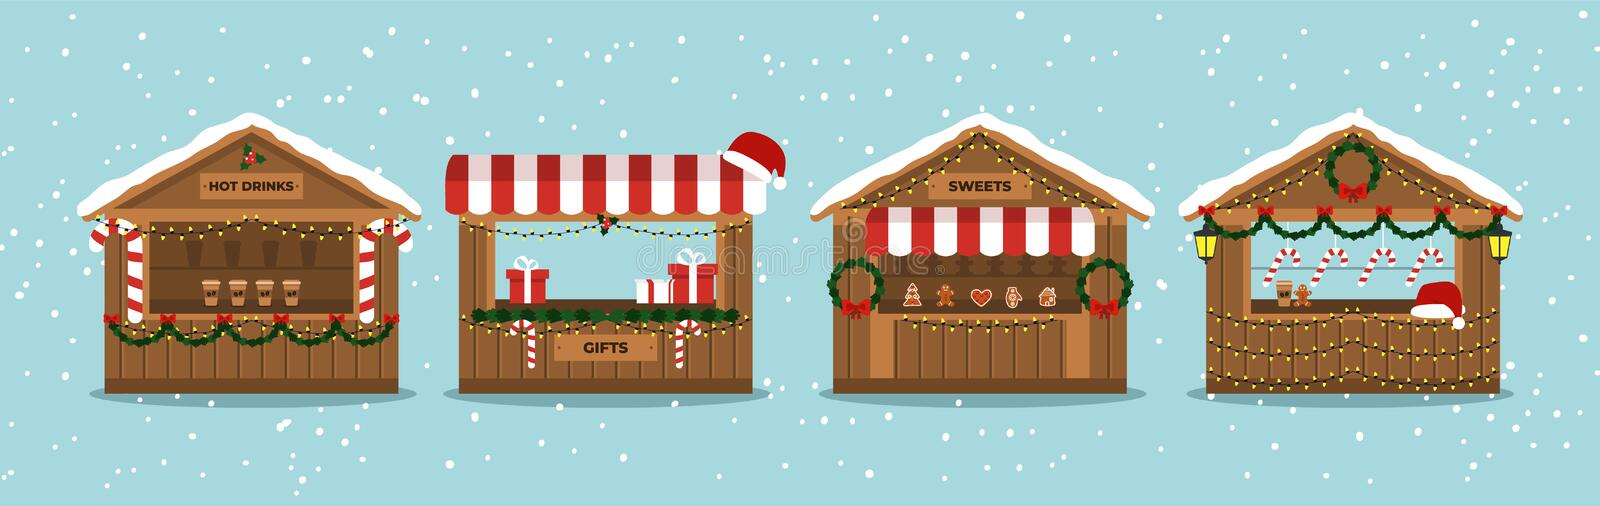 Christmas Market Stalls. Outdoor festival stand. Kiosks. Souvenir kiosk. Winter. Vector. Christmas Market Stalls. Outdoor festival stand. Kiosks. Souvenir kiosk vector illustration